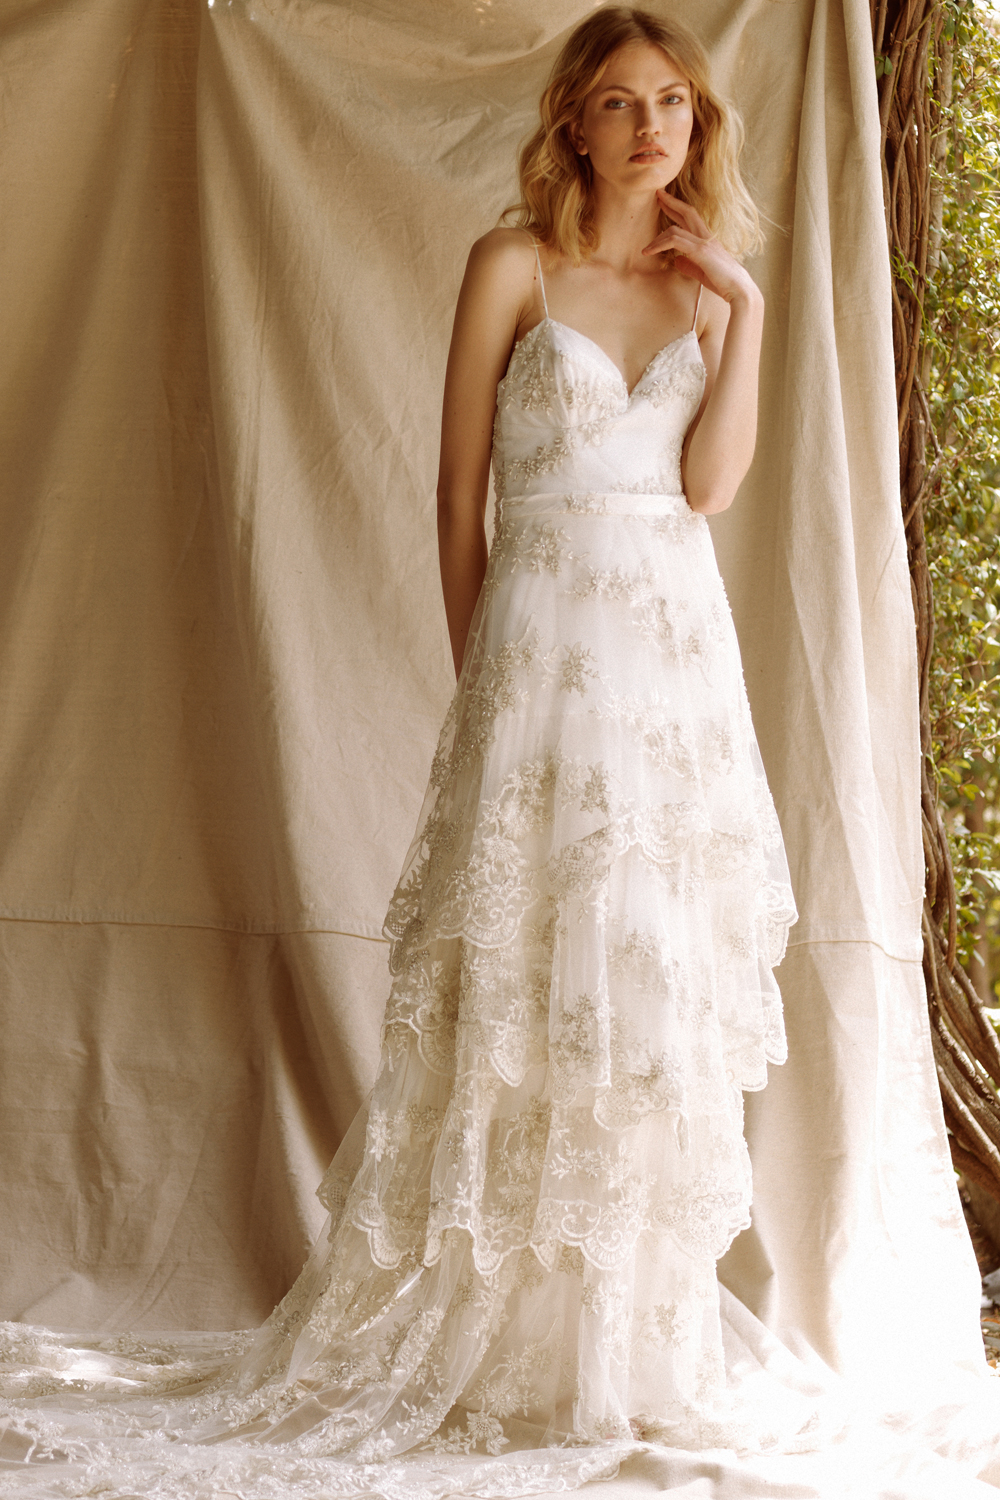 Free People unveil new boho-inspired wedding dress collection...